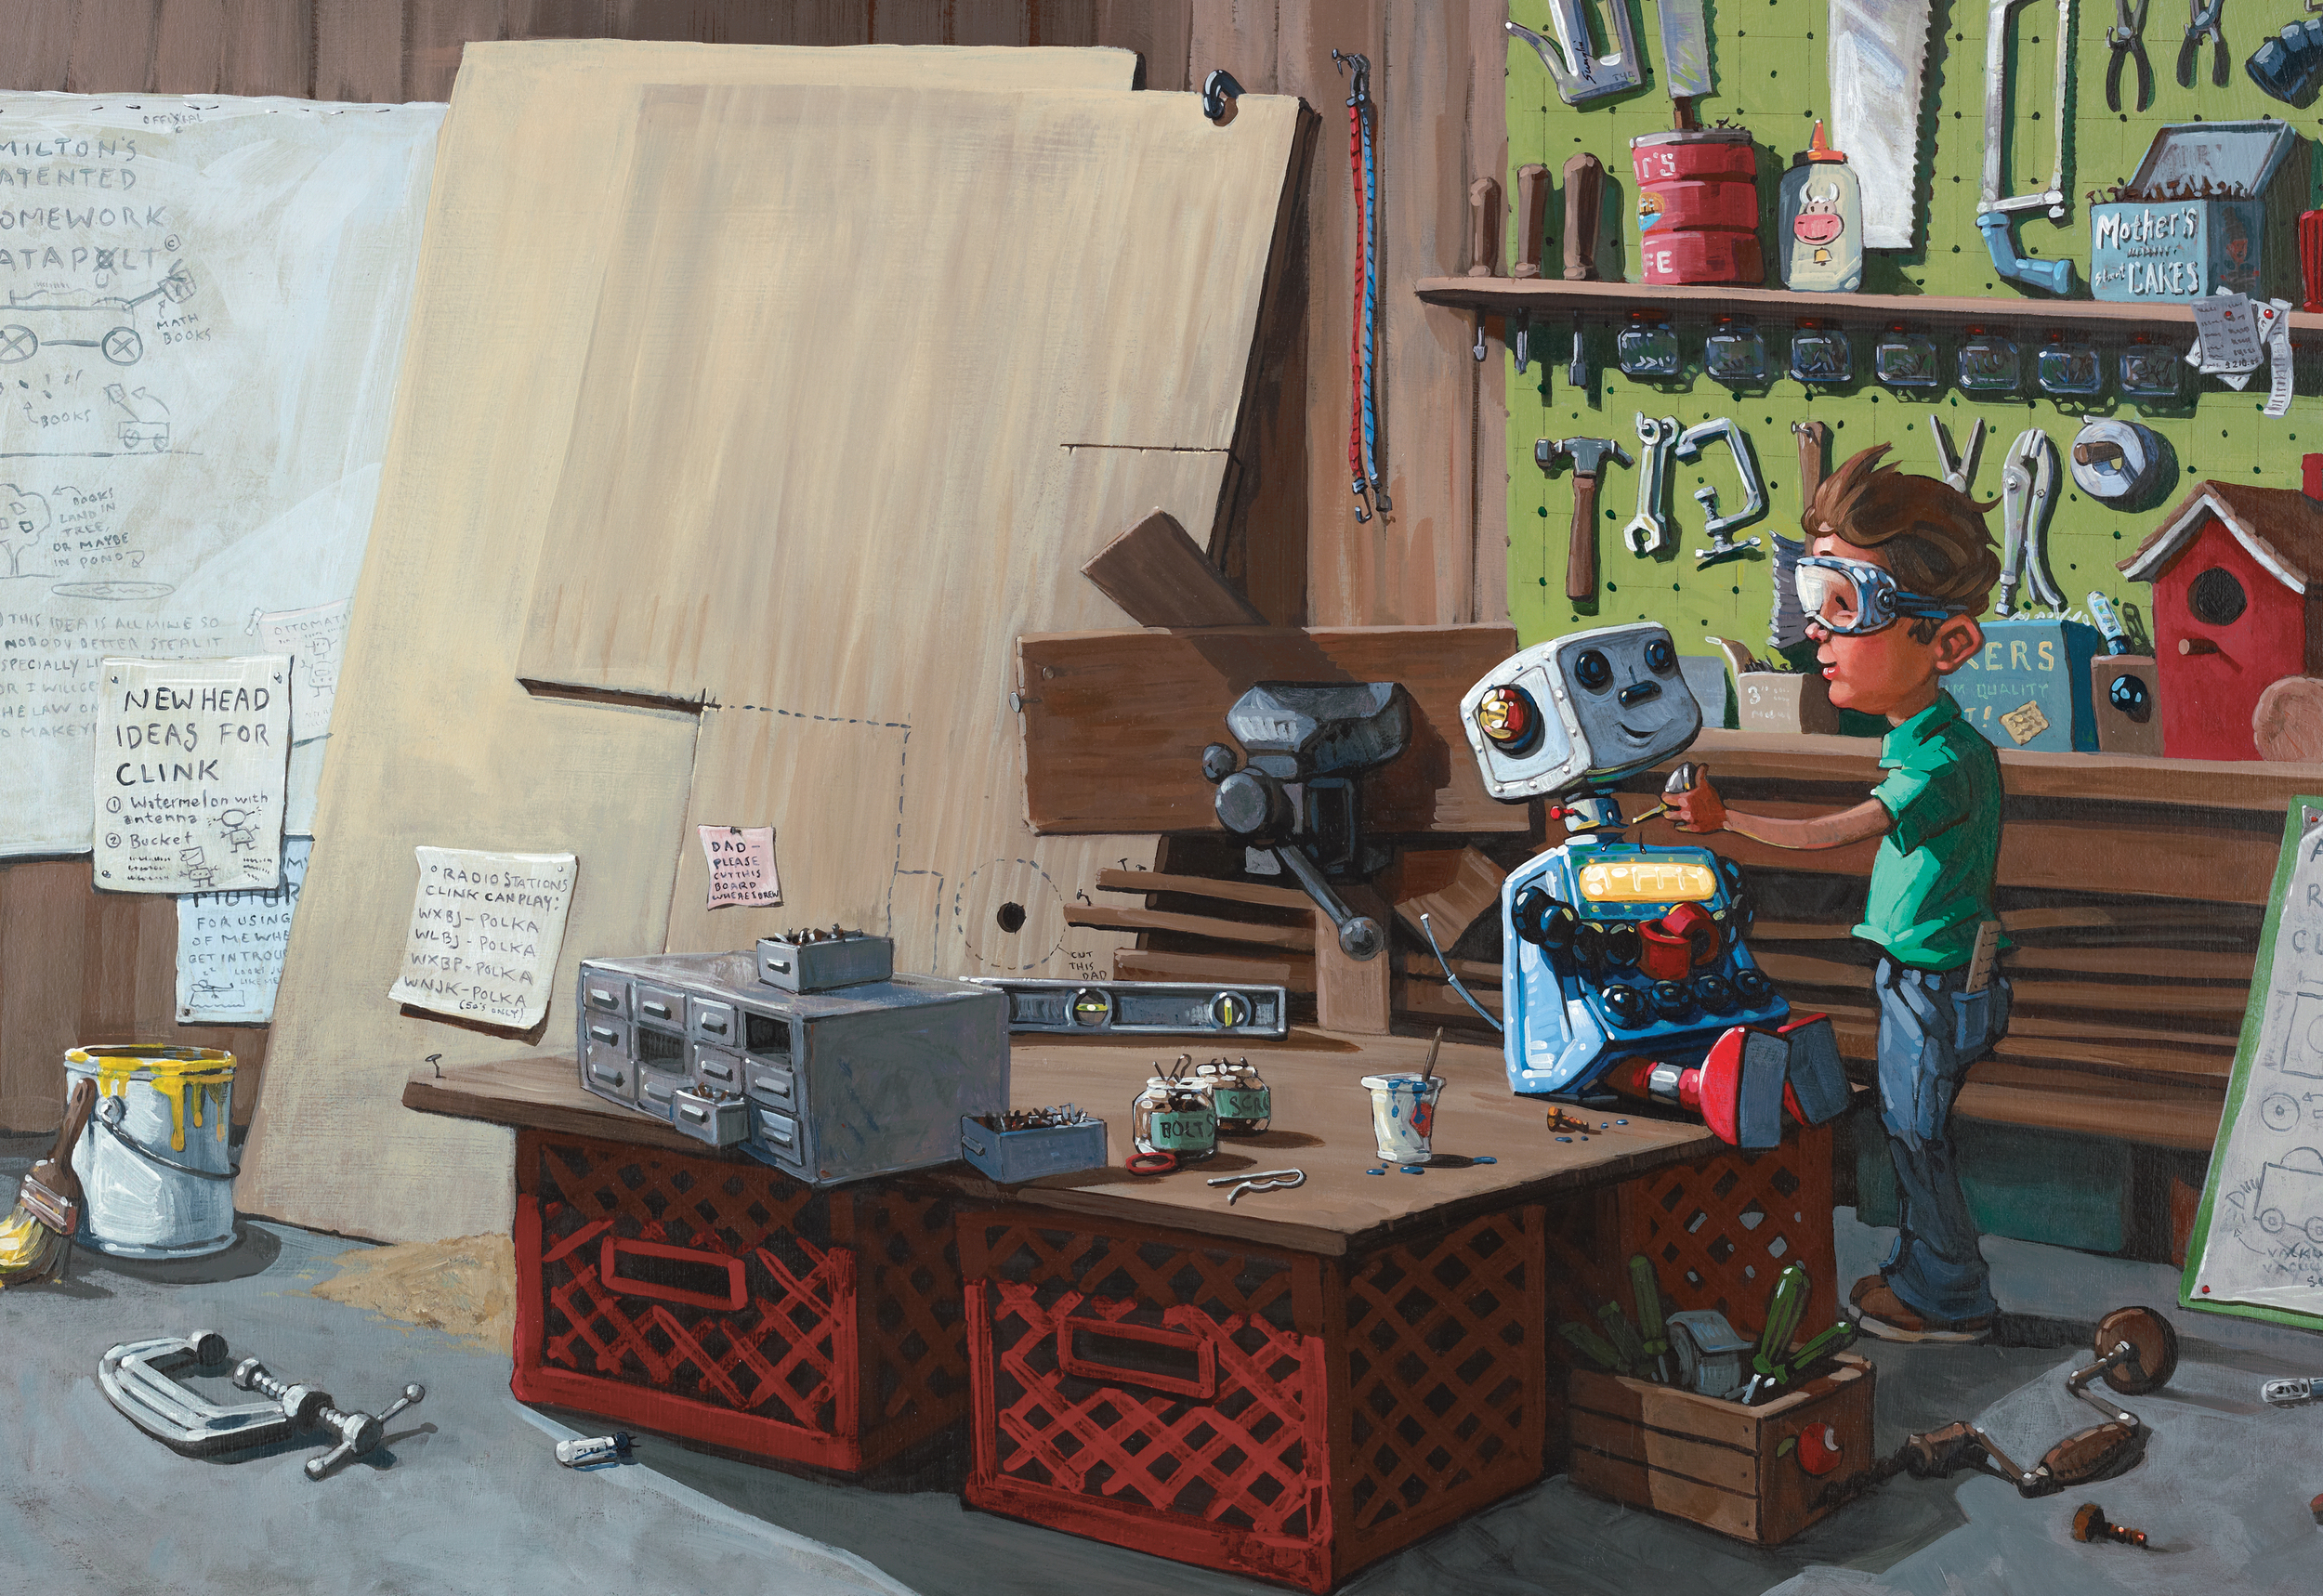 Milton's Workshop   • Oil on illustration board. Check out Milton's plans and notes in the background. BTW, I own most of these tools.